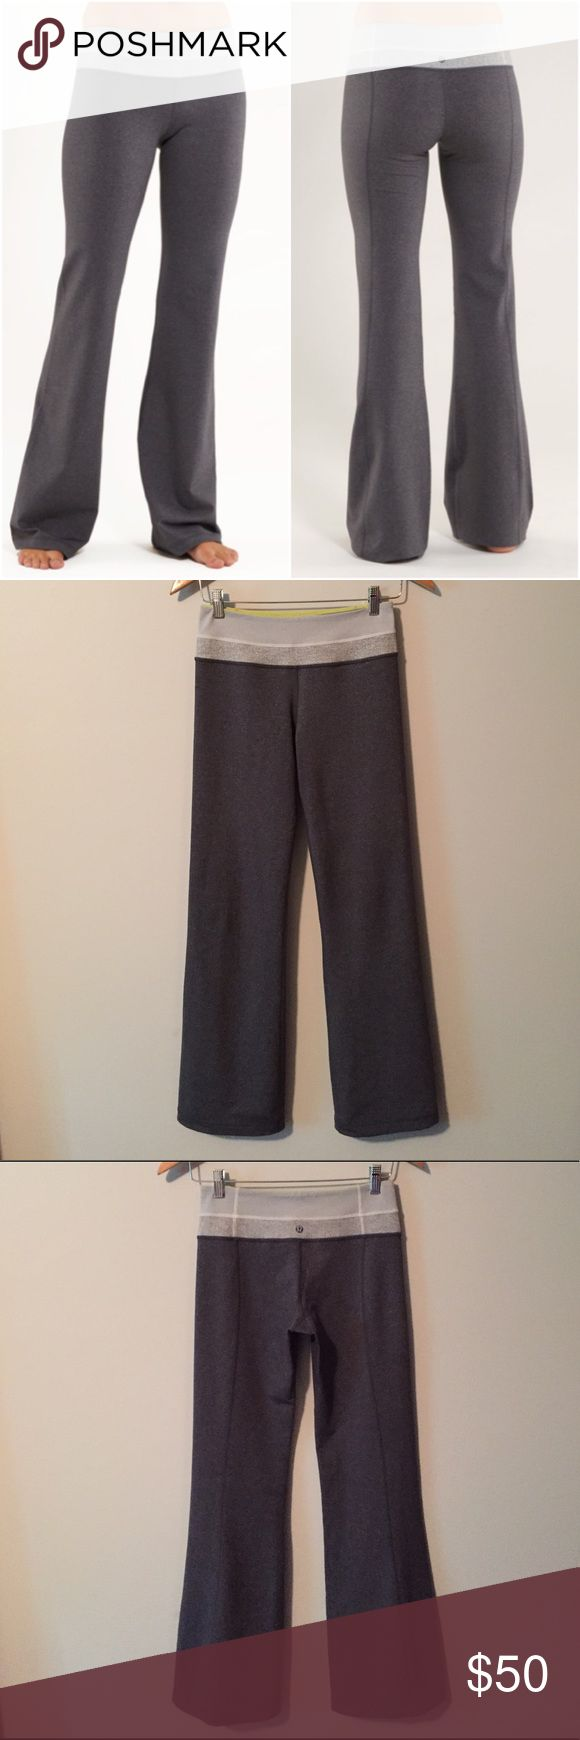 Lululemon Groove Pant Lululemon Groove Pants, size 4, excellent condition with no flaws(meaning no piling/rips/holes/seam damage/stains/etc). Bundle to save 10% off ❤ lululemon athletica Pants